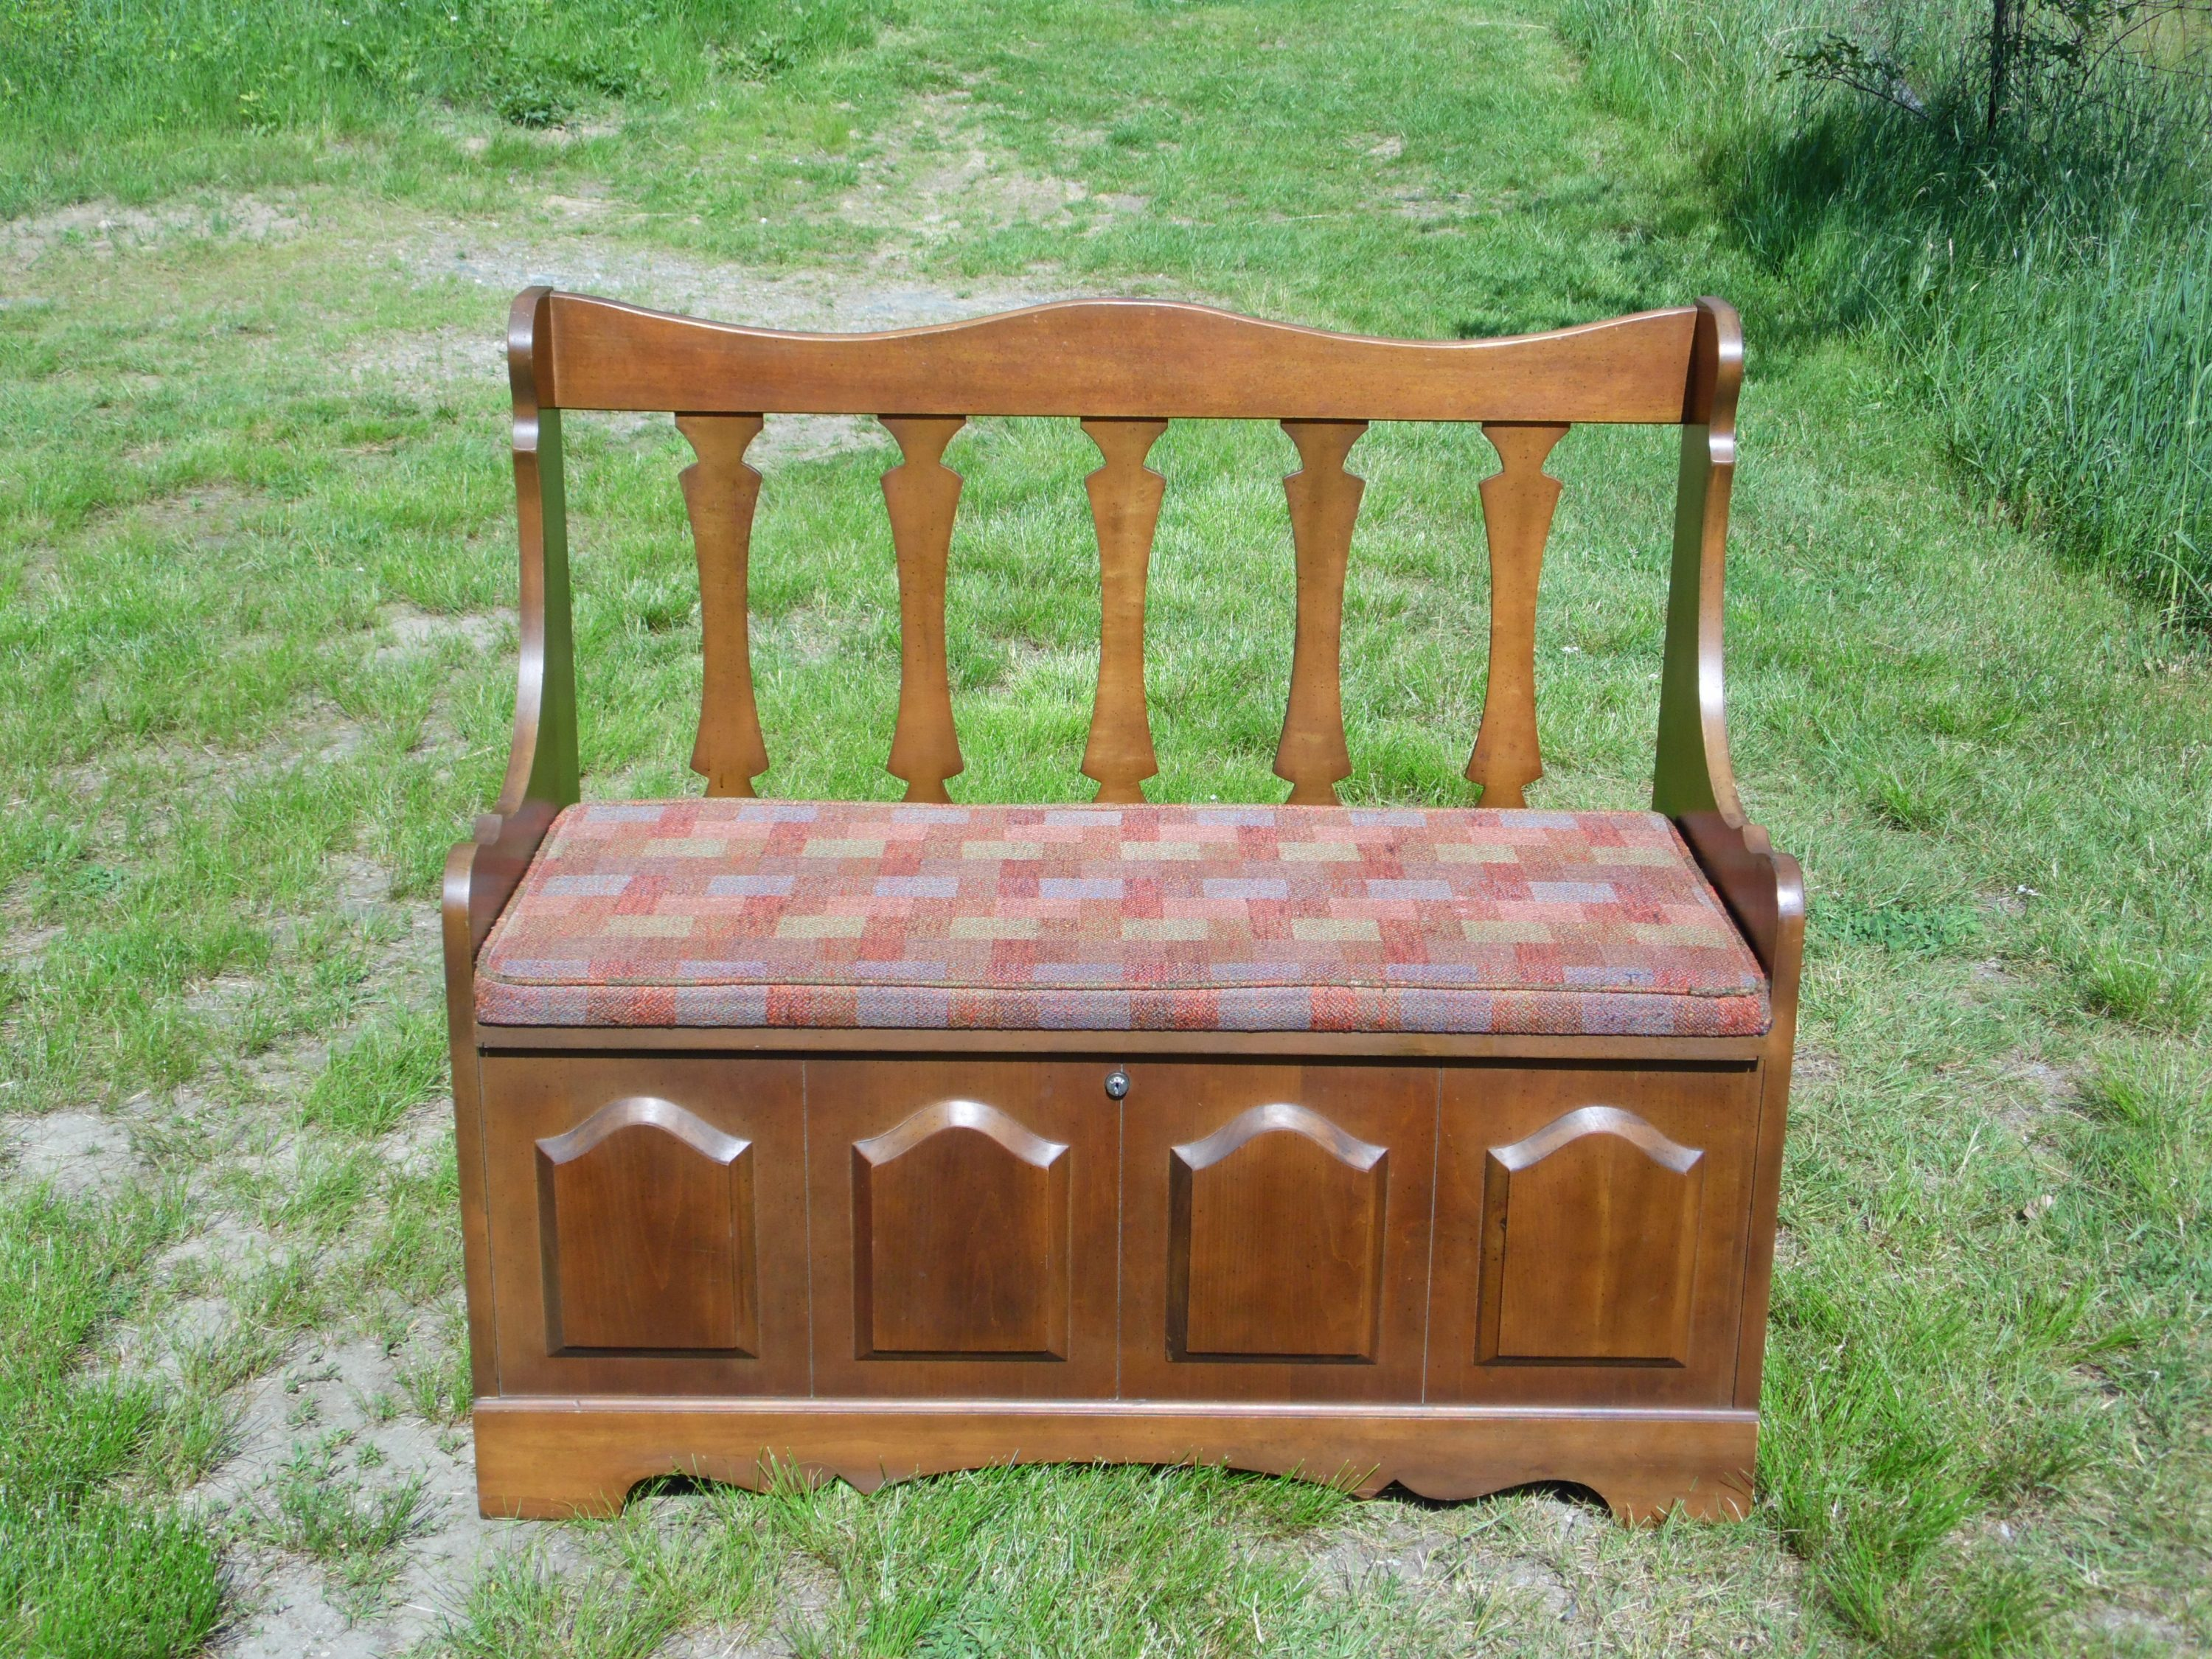 Vintage Mid Century Modern Lane Cedar Hope Chest Trunk Bench Loveseat Settee